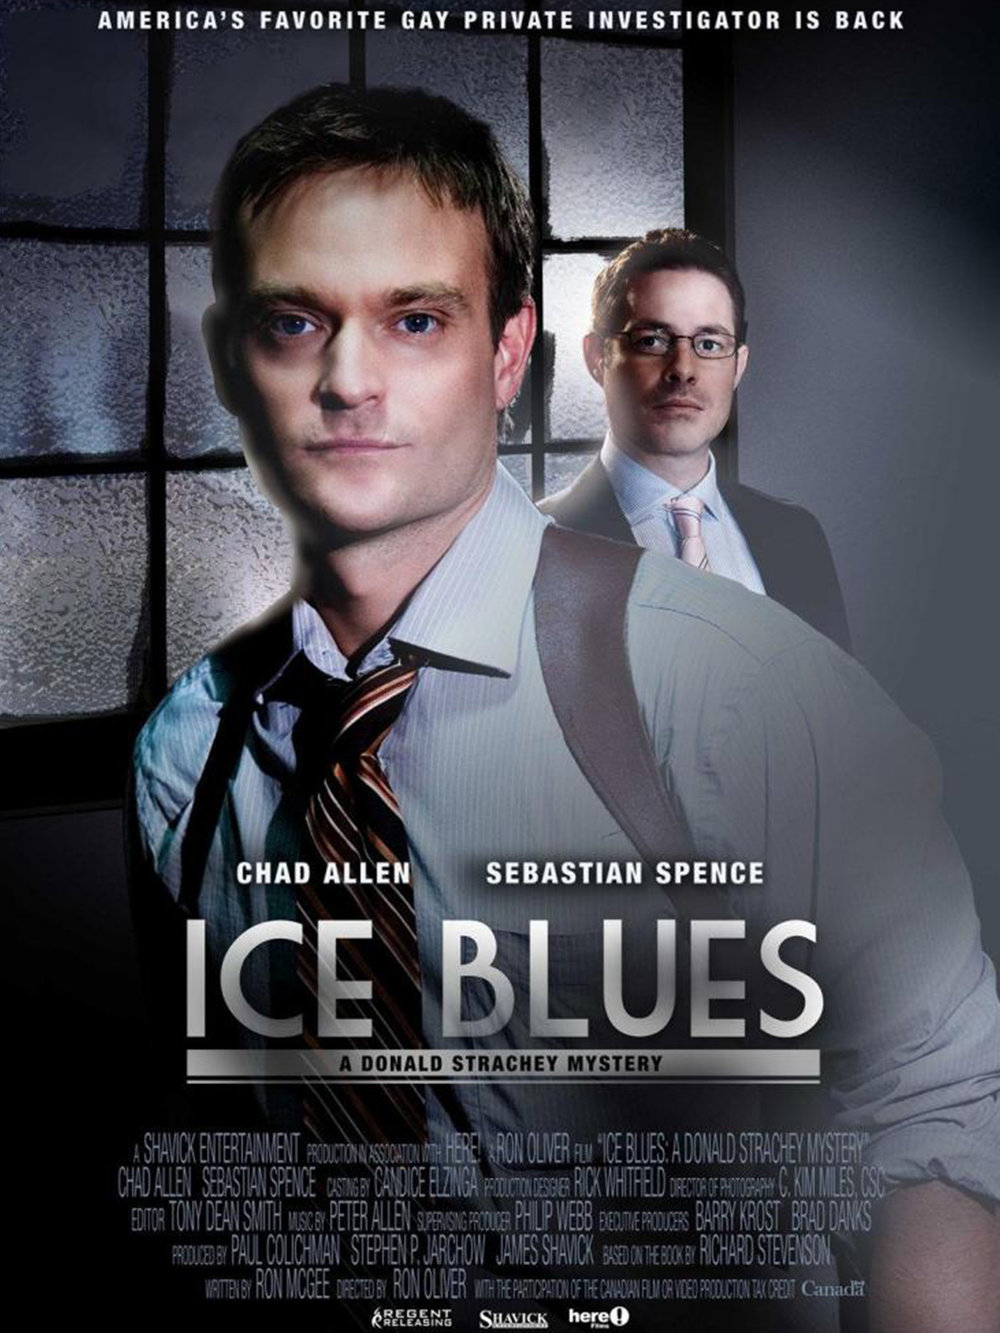 Here-IceBlues-Full-Image-en-US.jpg